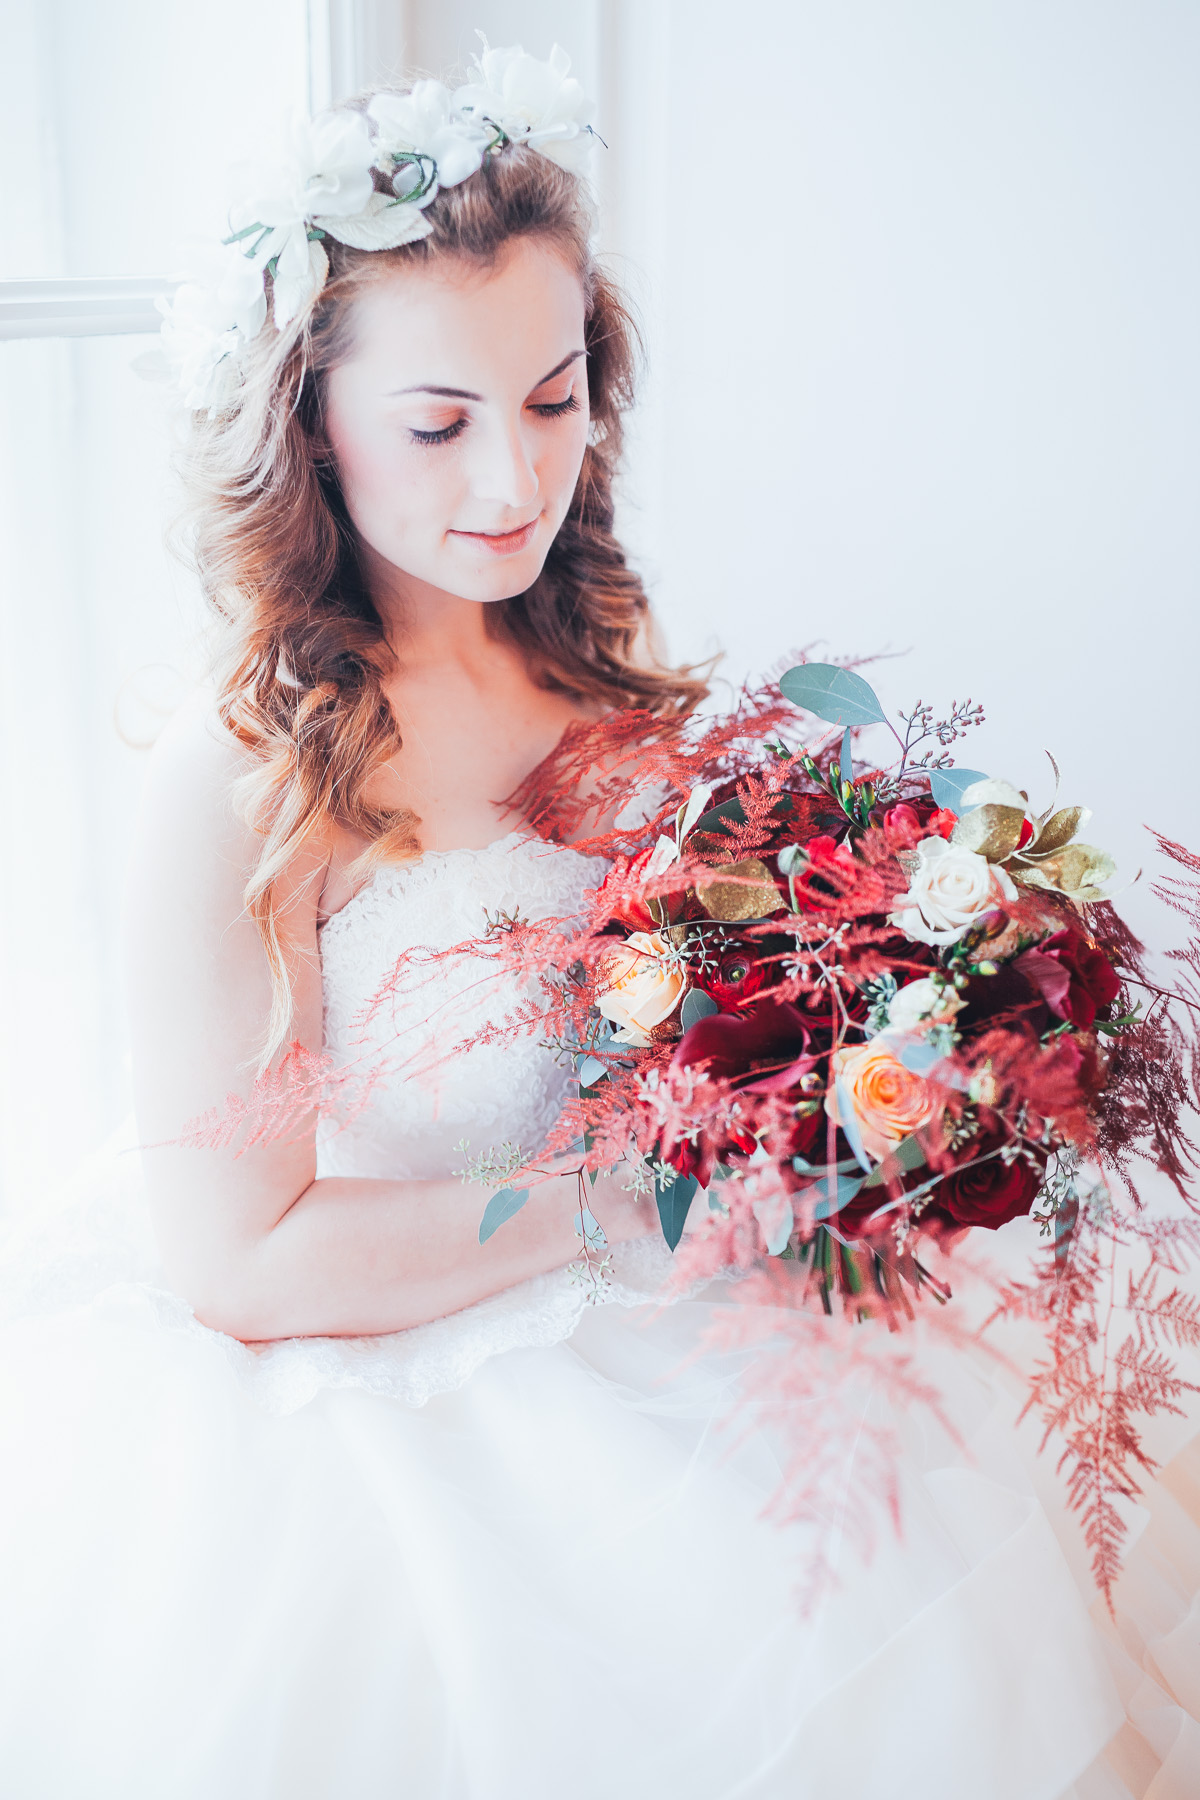 Bridal styled shoot with a horse Metamorphoses by luxury destination wedding planner High Emotion Weddings at the Spanish Riding School Vienna Austria